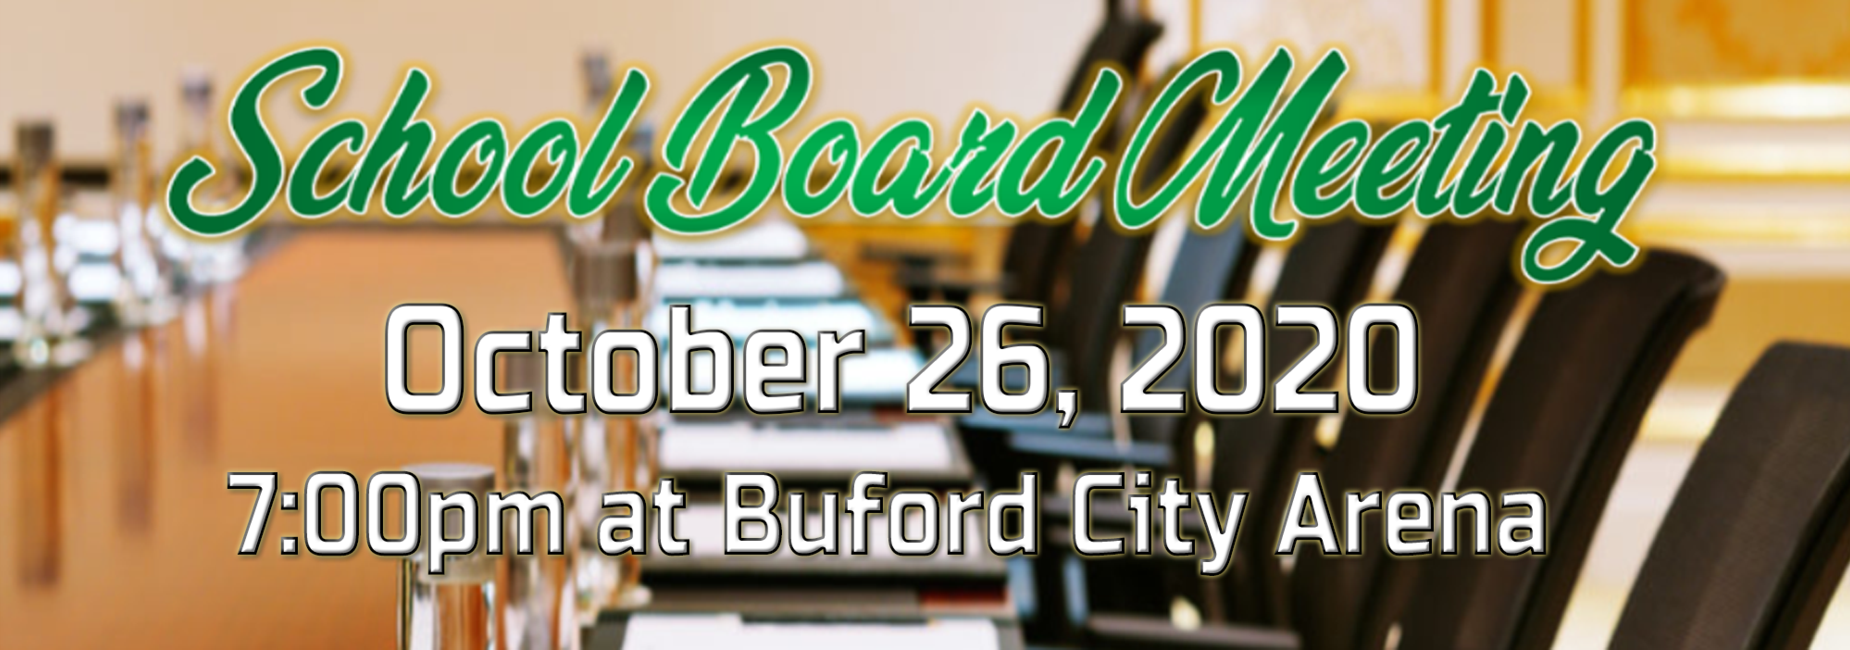 School Board Meeting October 26th 7:00pm at Buford city Arena